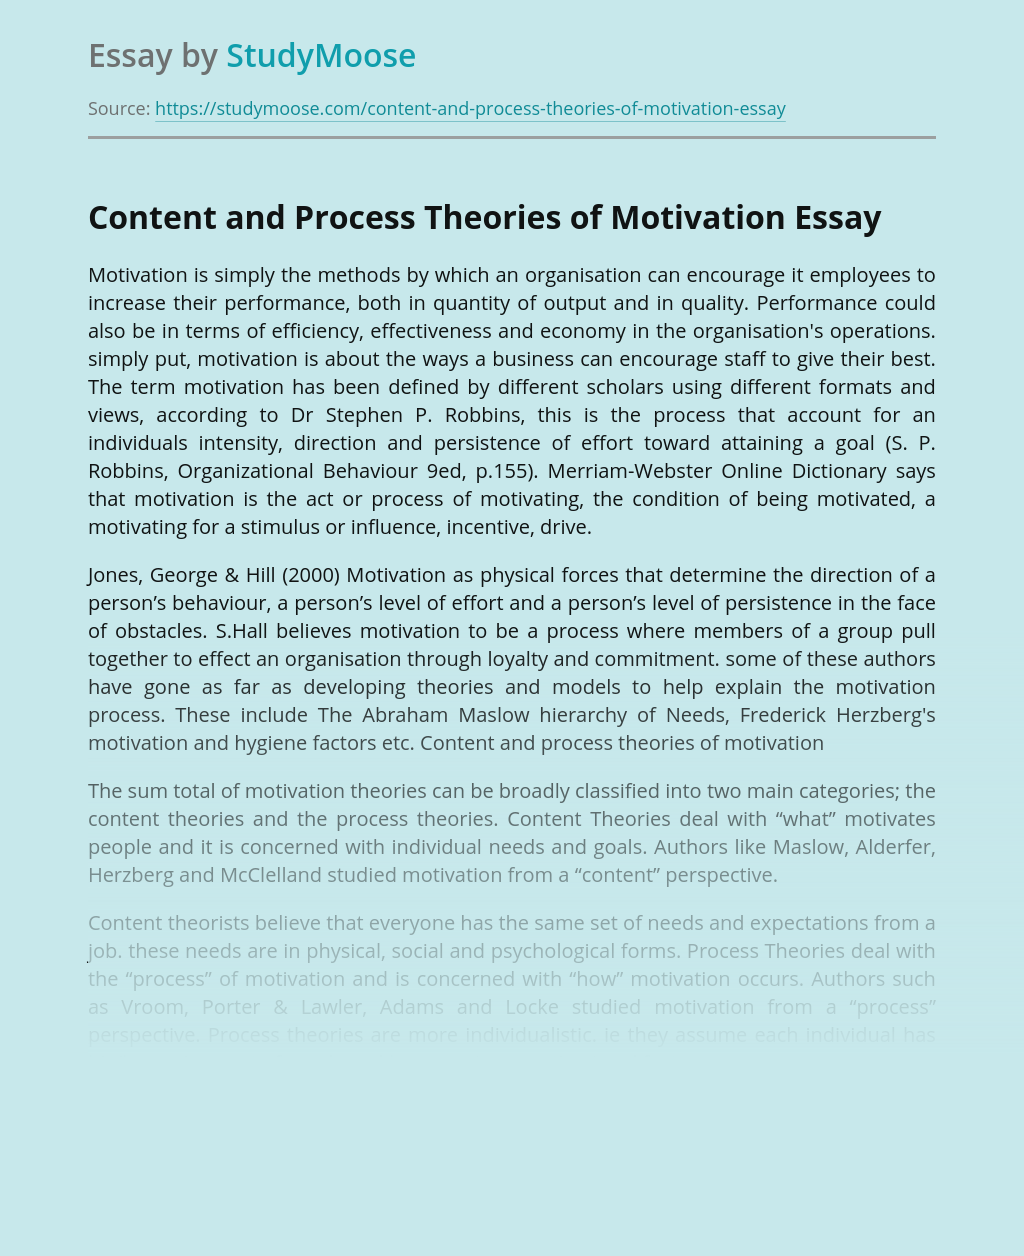 Developing theories and models in motivation process